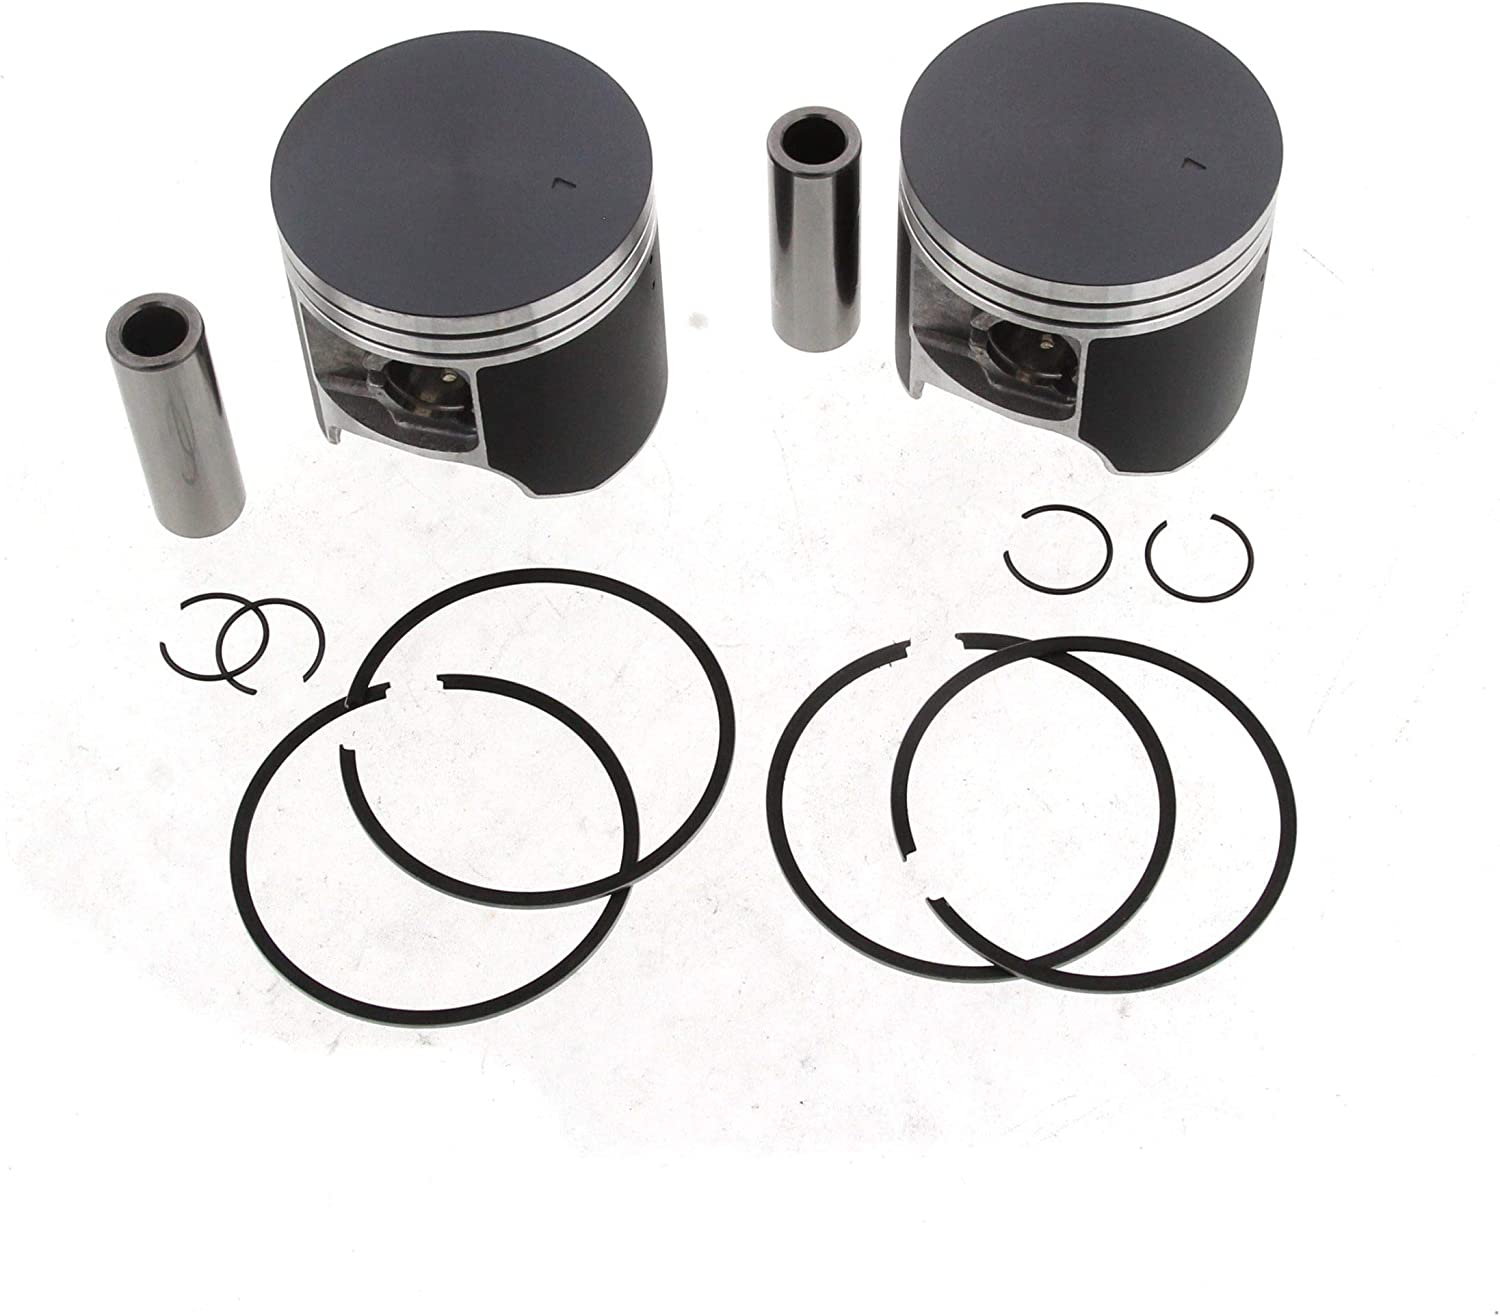 Piston Kit fits Arctic Cat ZL 600 1998-2000 A-Case Series 20mm Wrist Pin Teflon Coated x2 by Race-Driven